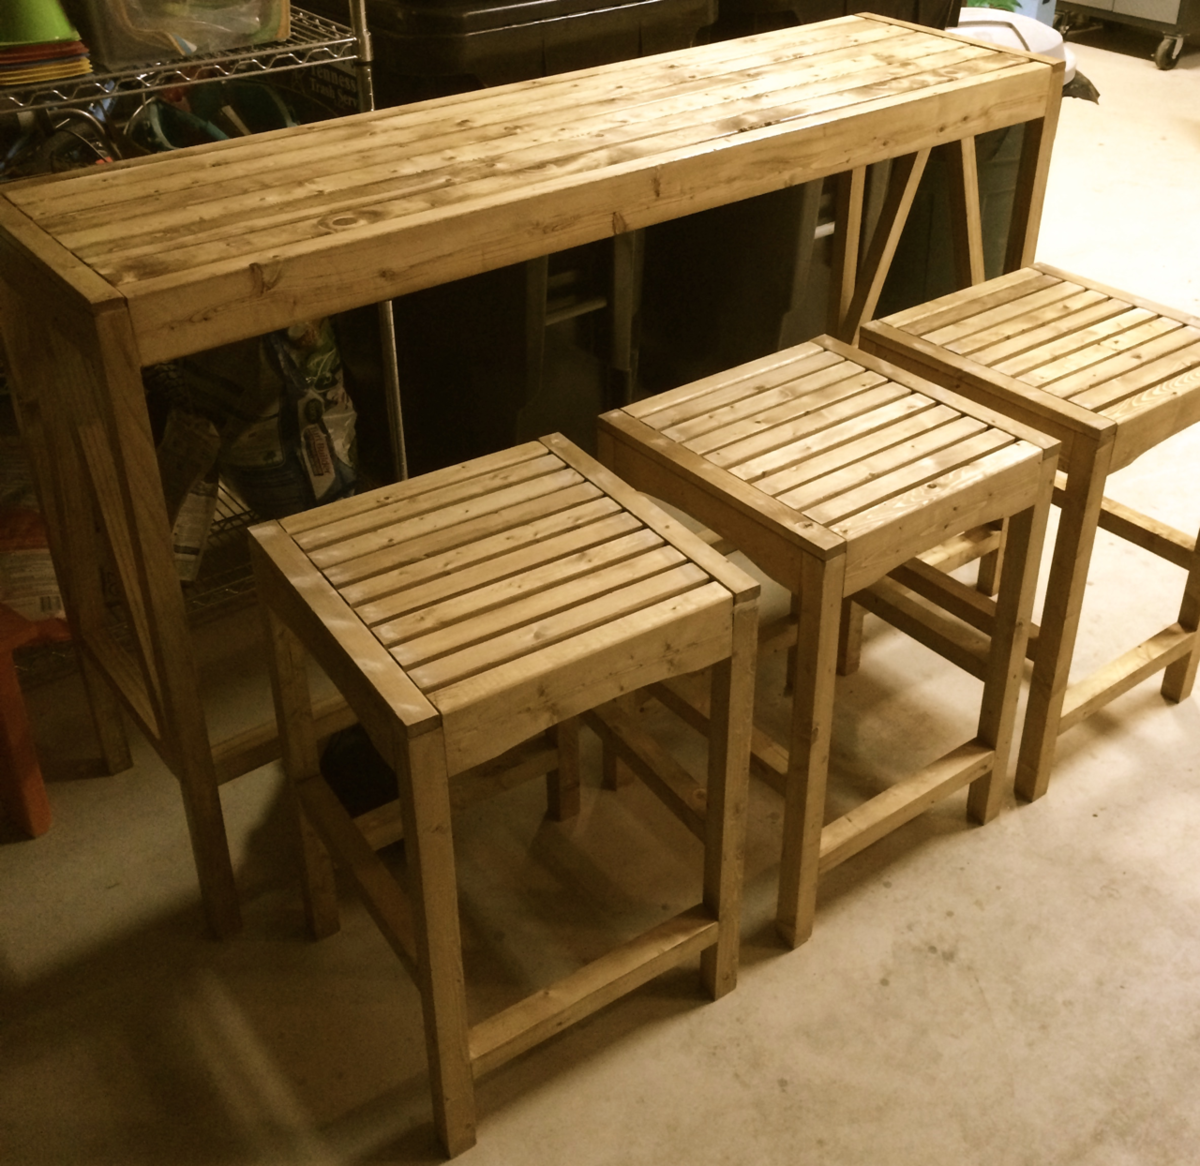 Bar Custom Wood And Woods: Sutton Custom Outdoor Bar Stools - DIY Projects